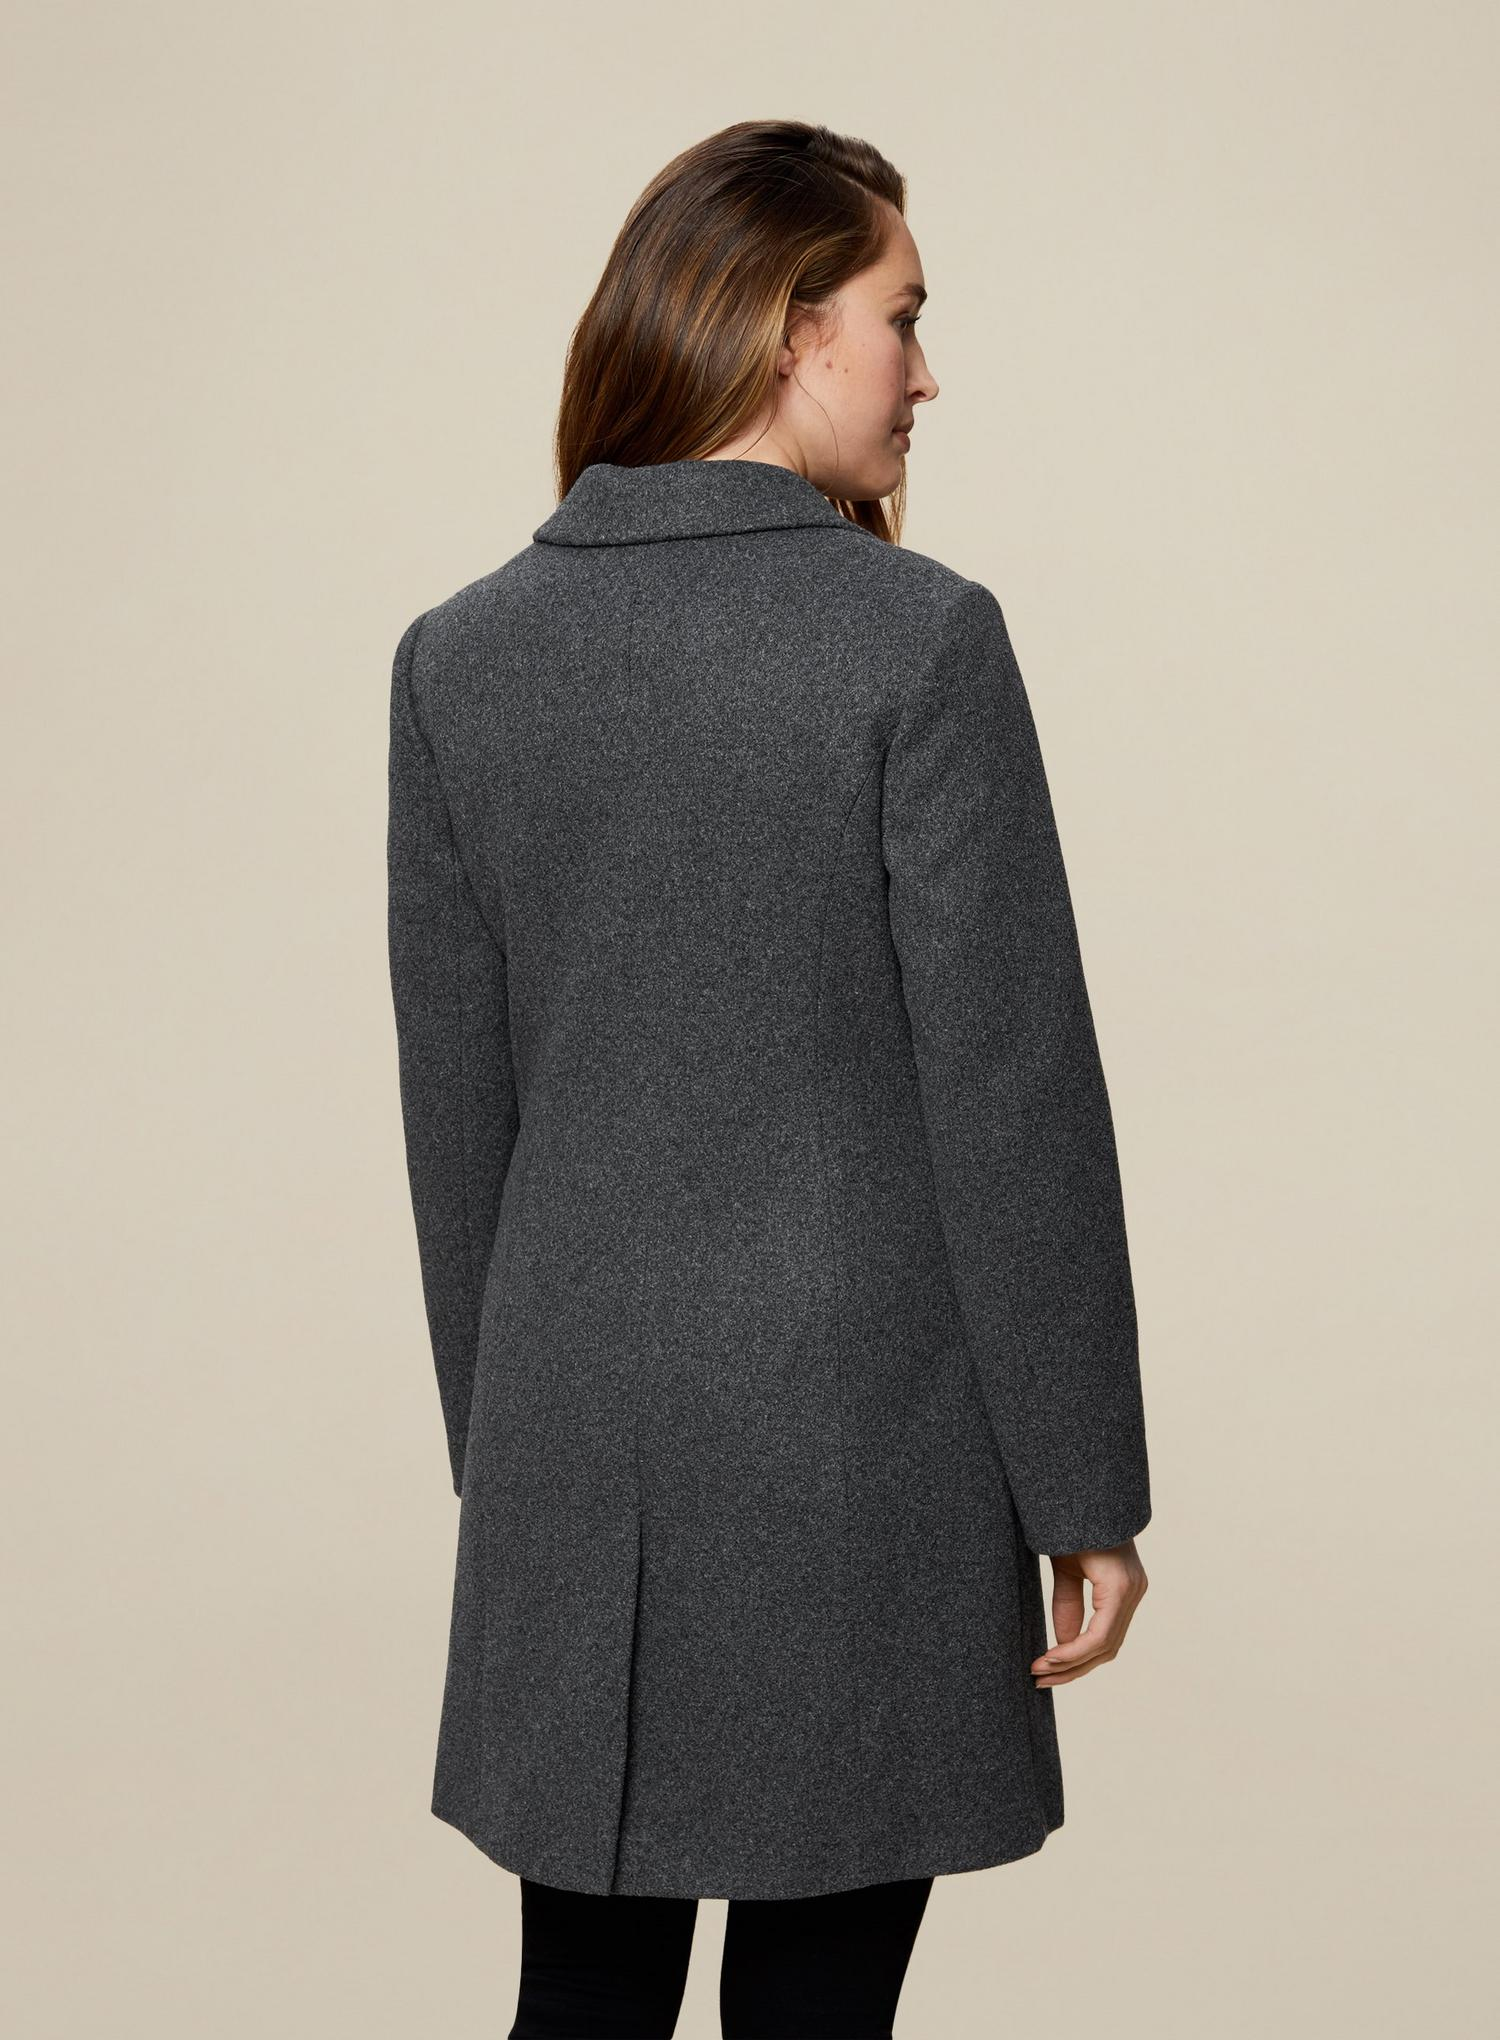 131 Grey Double Breasted Coat image number 4